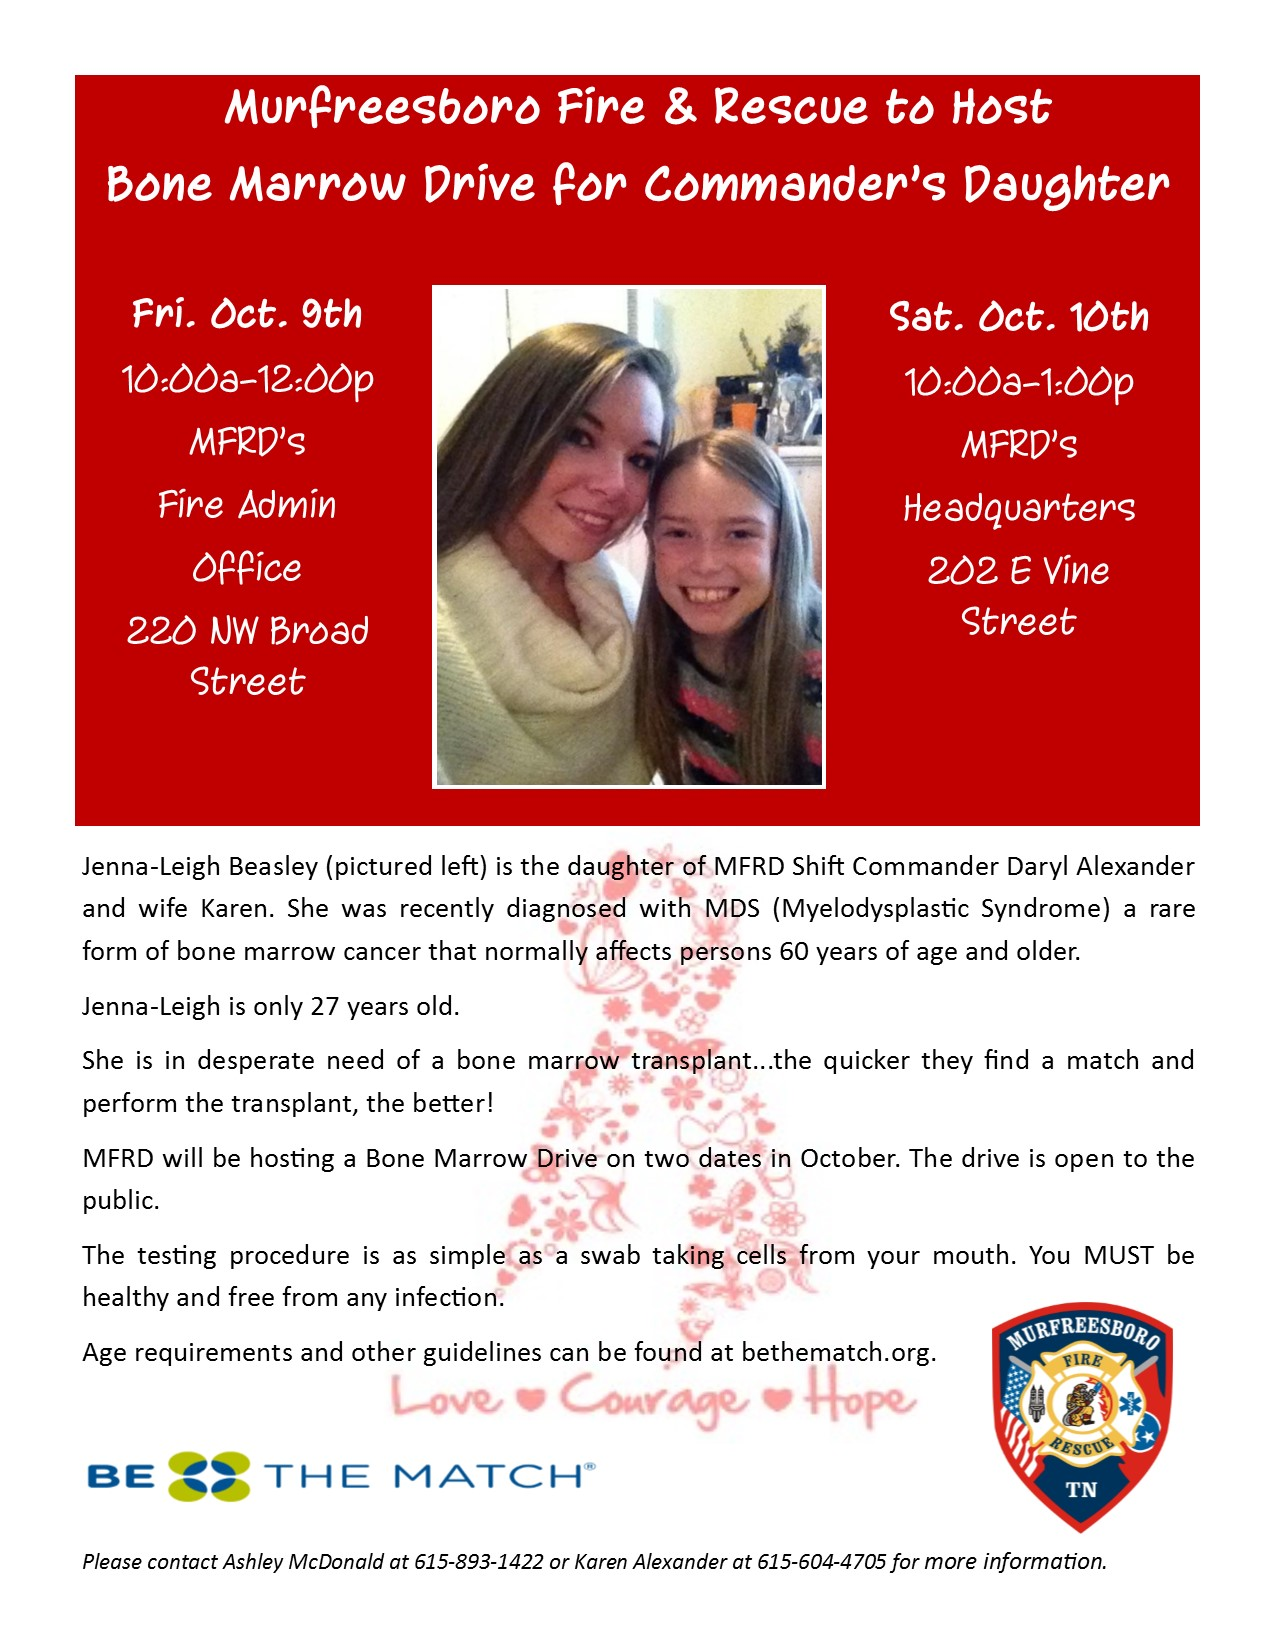 Bone Marrow Drive to help a young lady in Murfreesboro